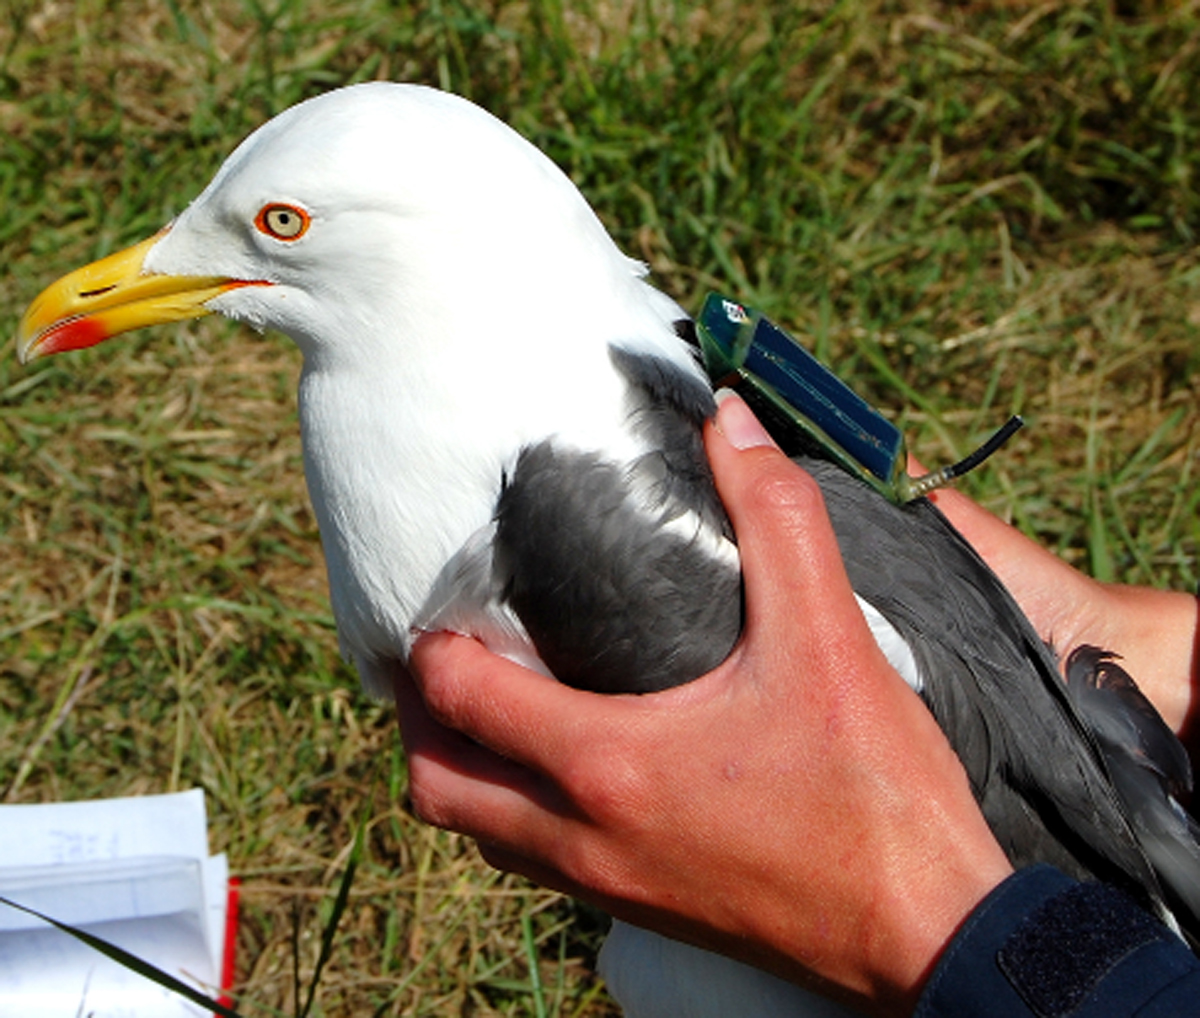 A gull fitted with a GPS transmitter 'backpack'